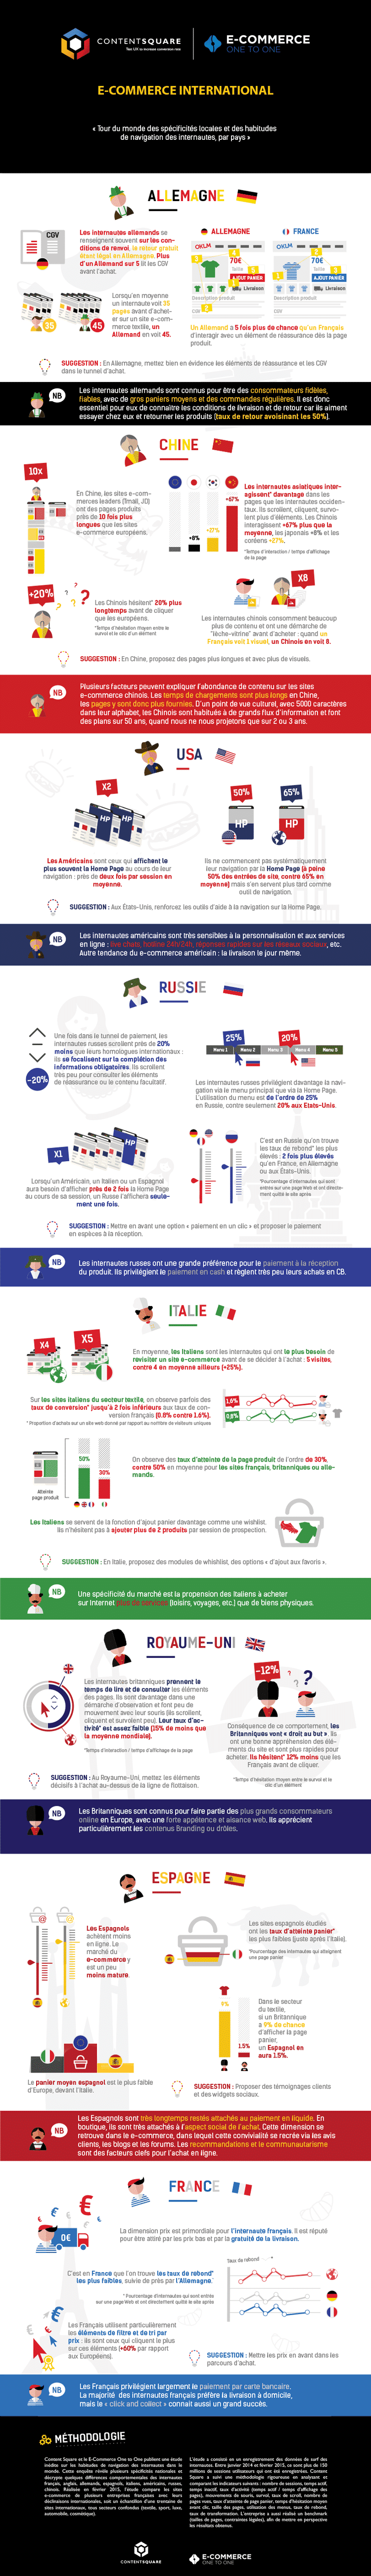 Infographie : E-commerce international, les comportements des internautes